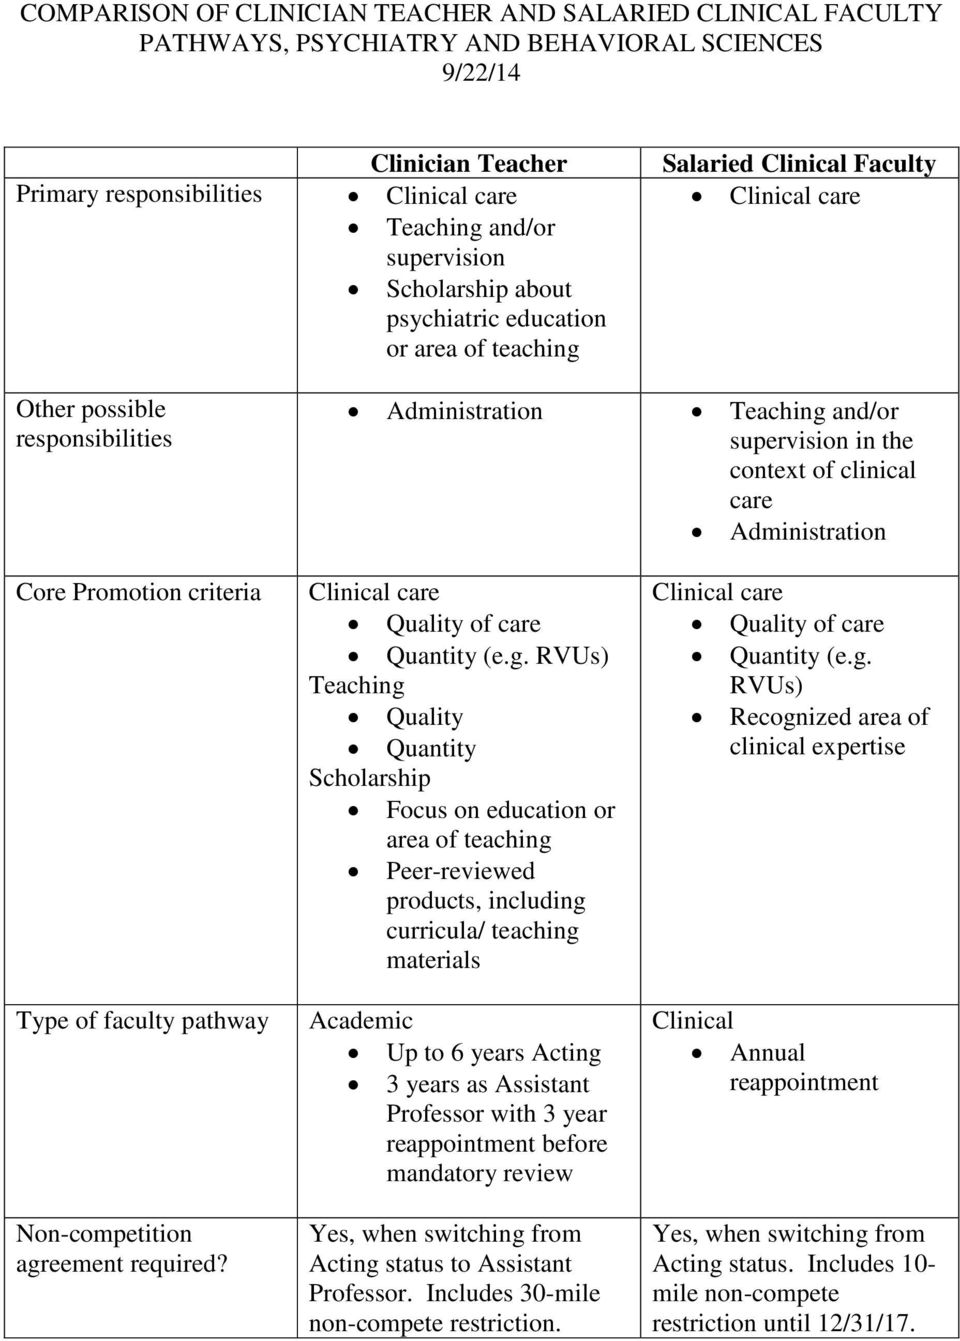 clinical care Administration Core Promotion criteria Type of faculty pathway Non-competition agr